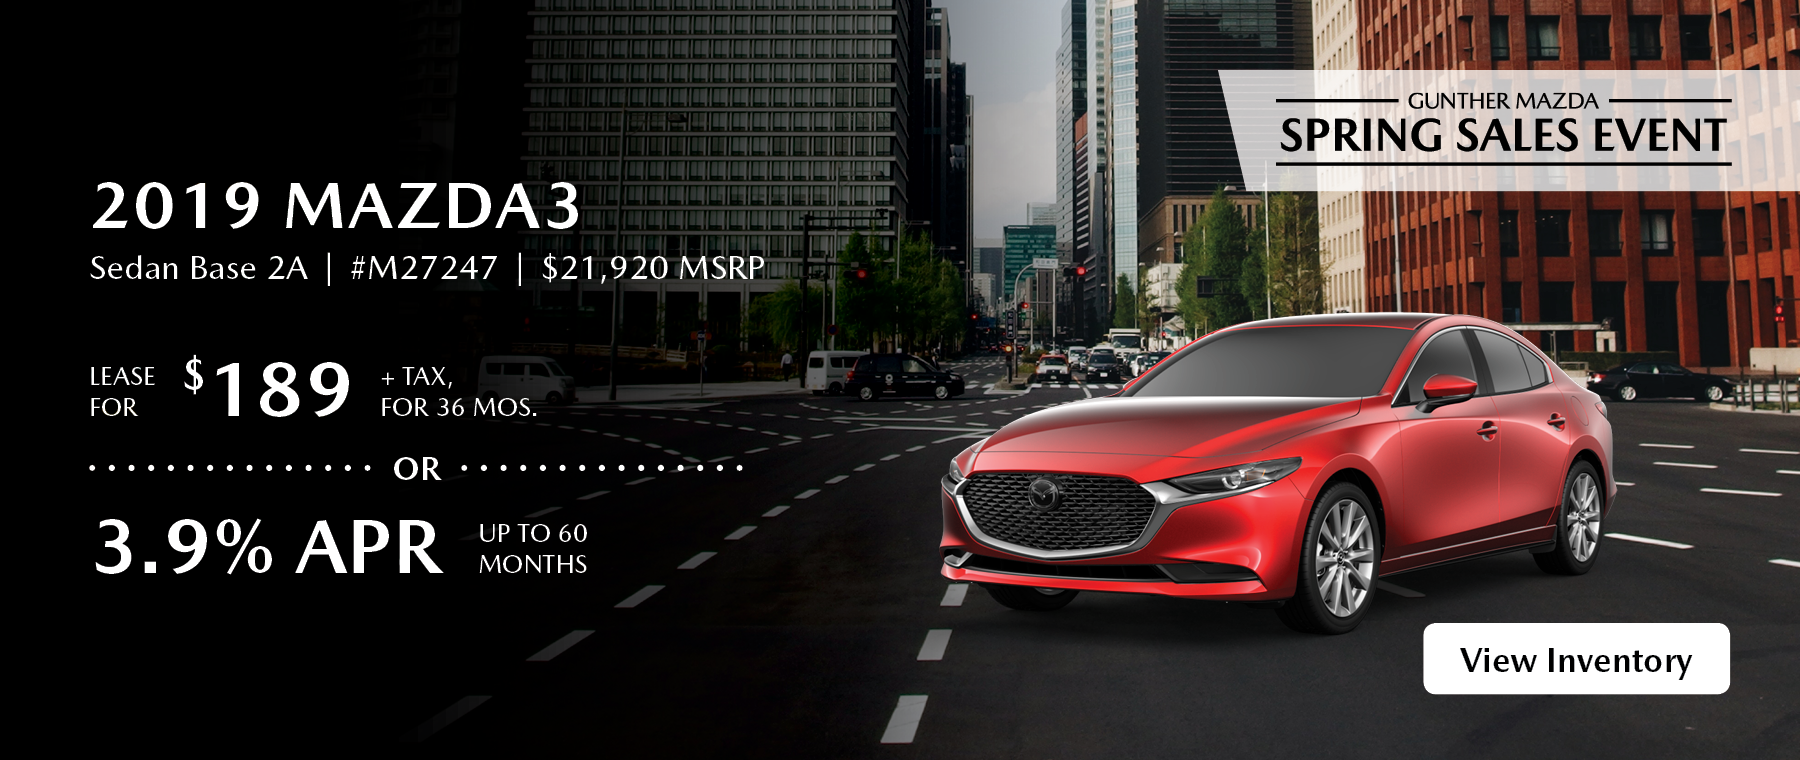 Lease the 2019 Mazda3 Sedan Base 2A for $189 plus tax for 36 months.